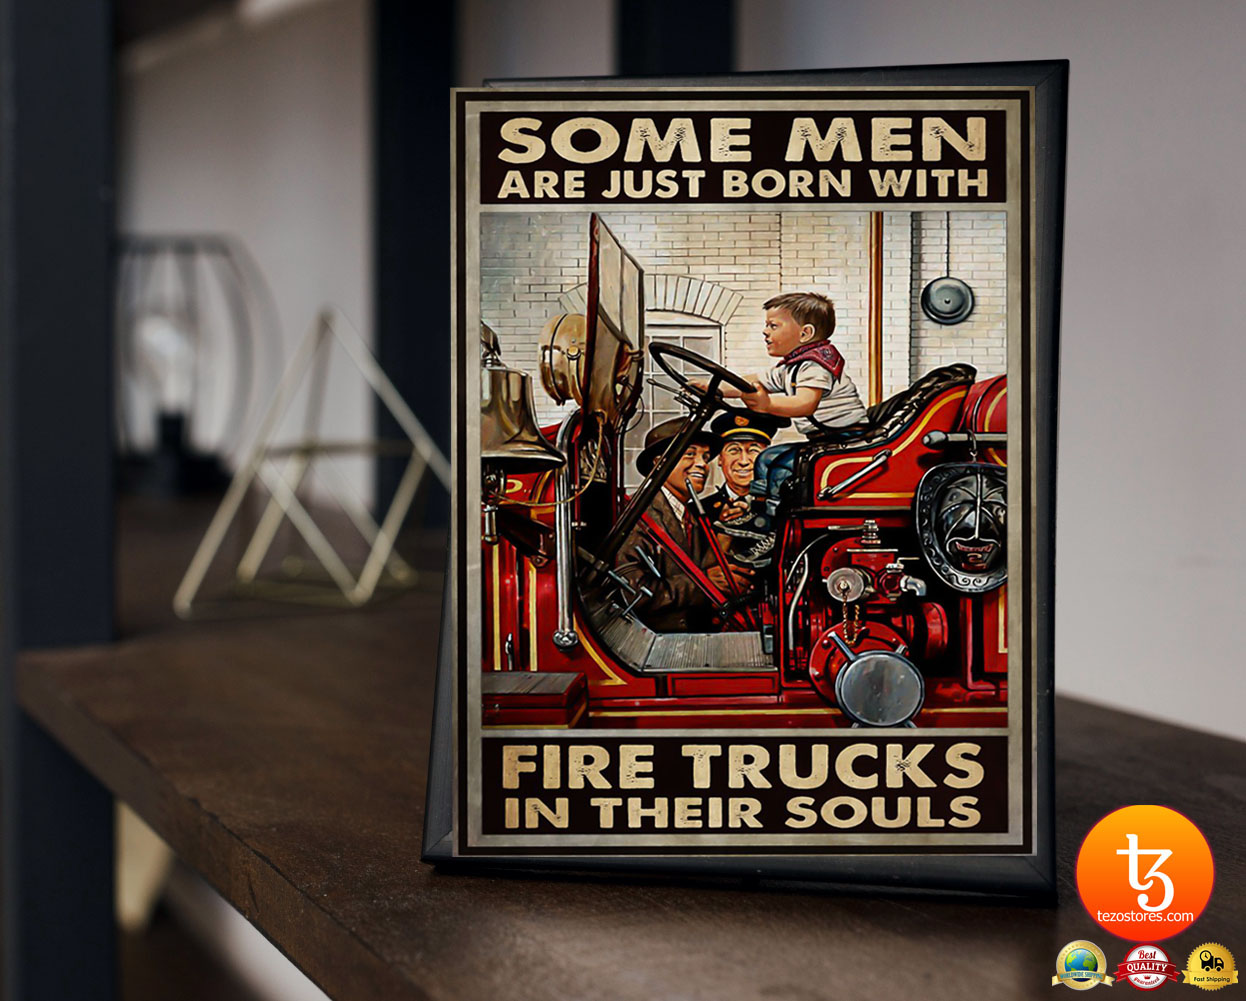 Some men are just born with fire trucks in their souls poster 3